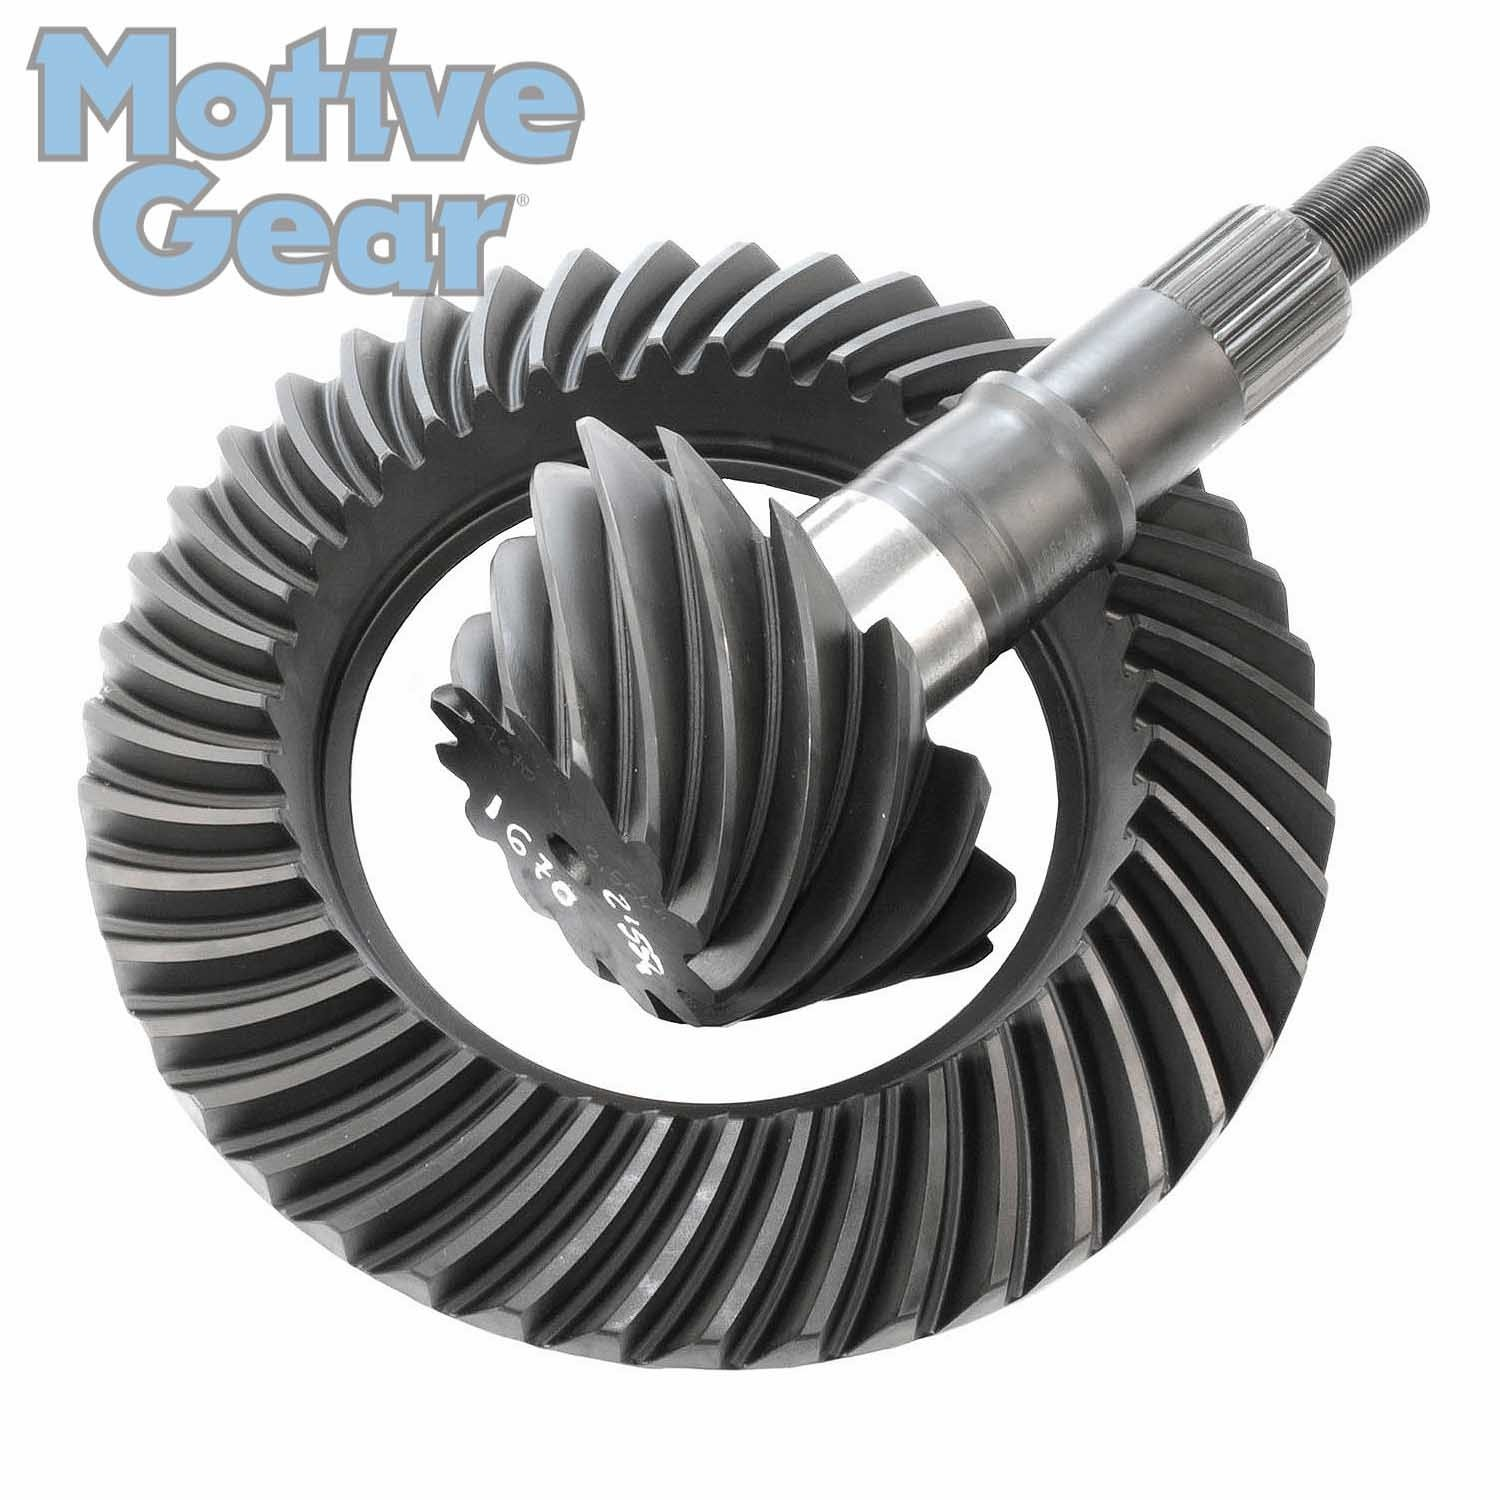 Motive Gear F8.8-373 Ring and Pinion Ford 8.8 Style, 3.73 Ratio